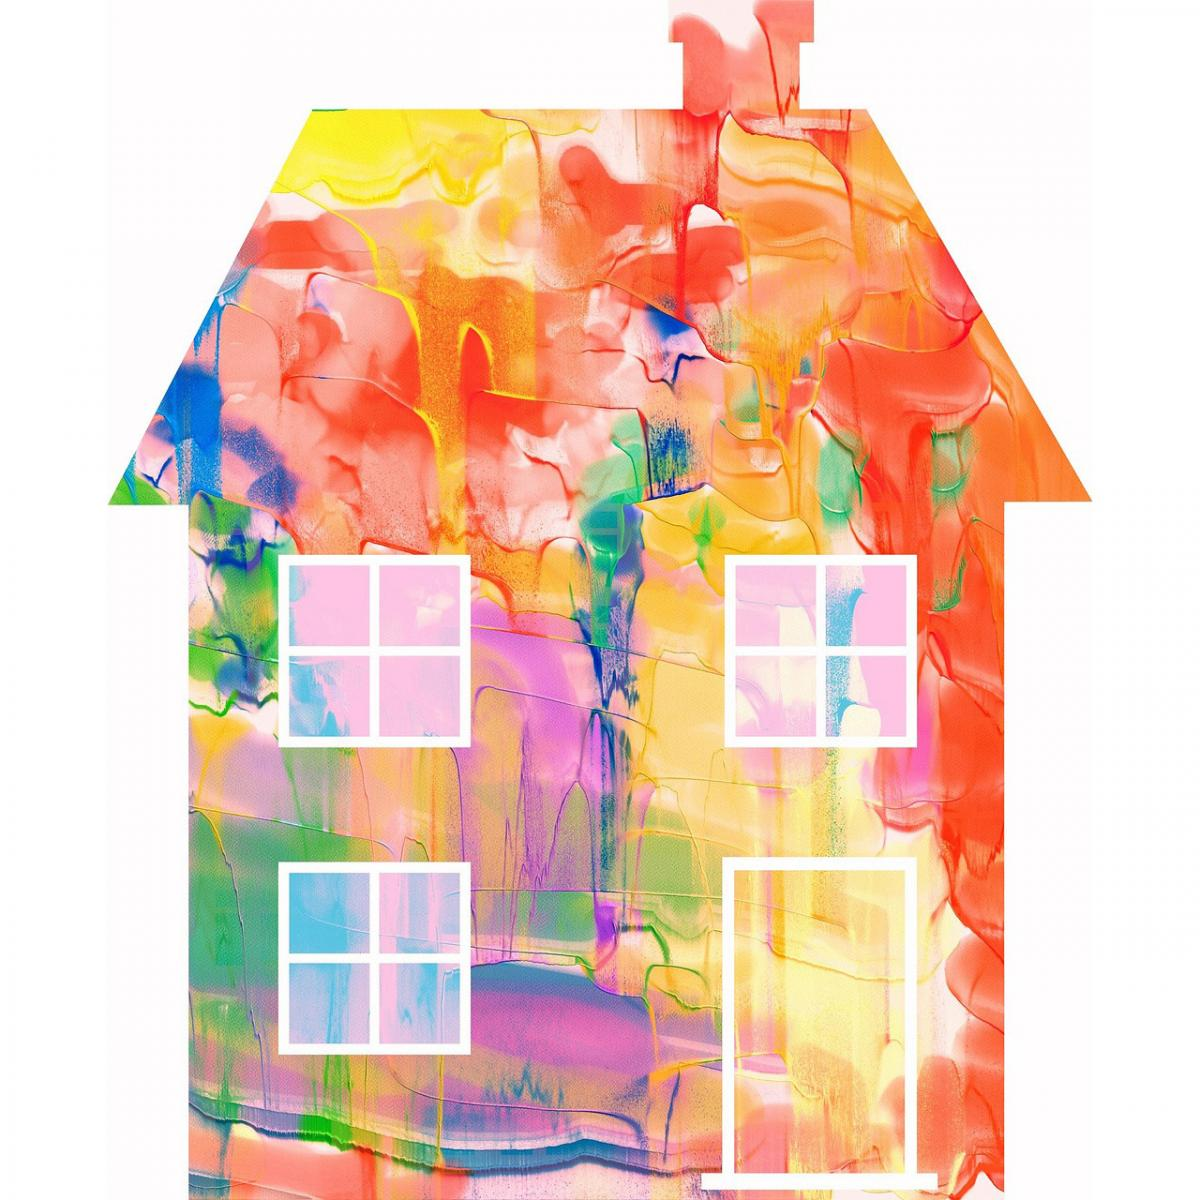 house painted with many different colors